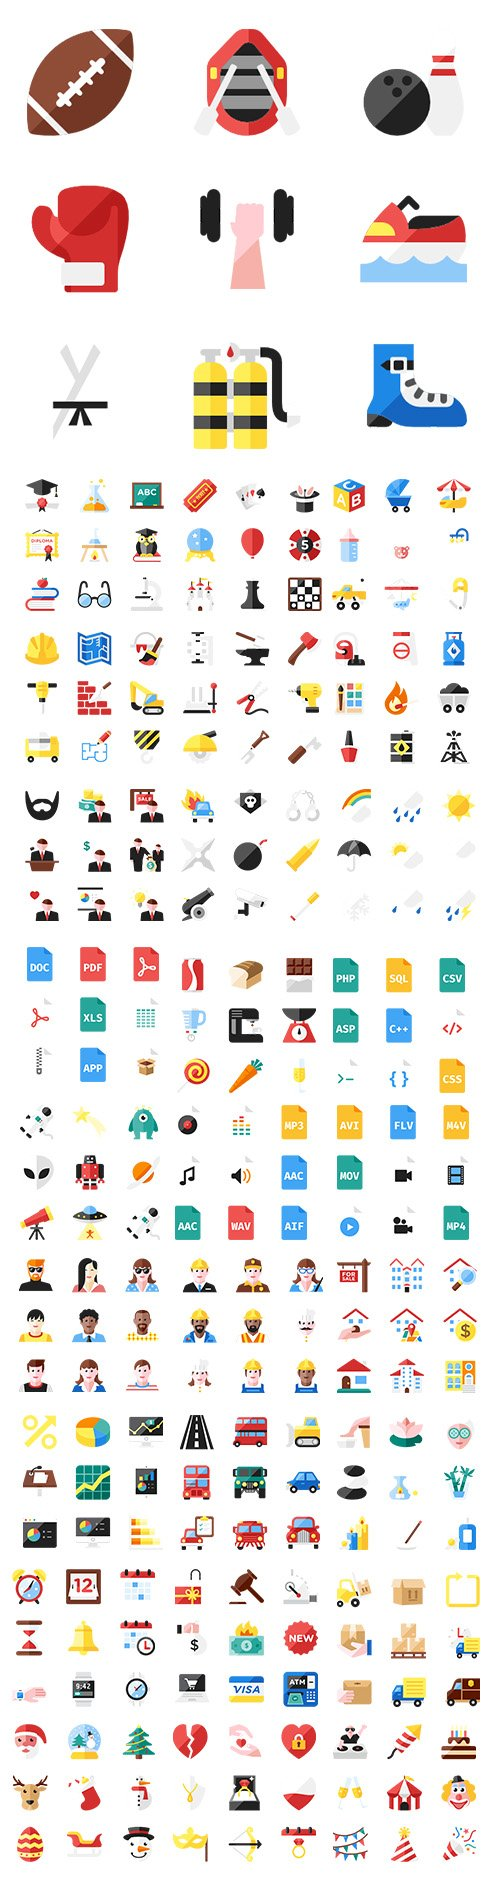 550+ Color Essential Vector Icons Pack vol2